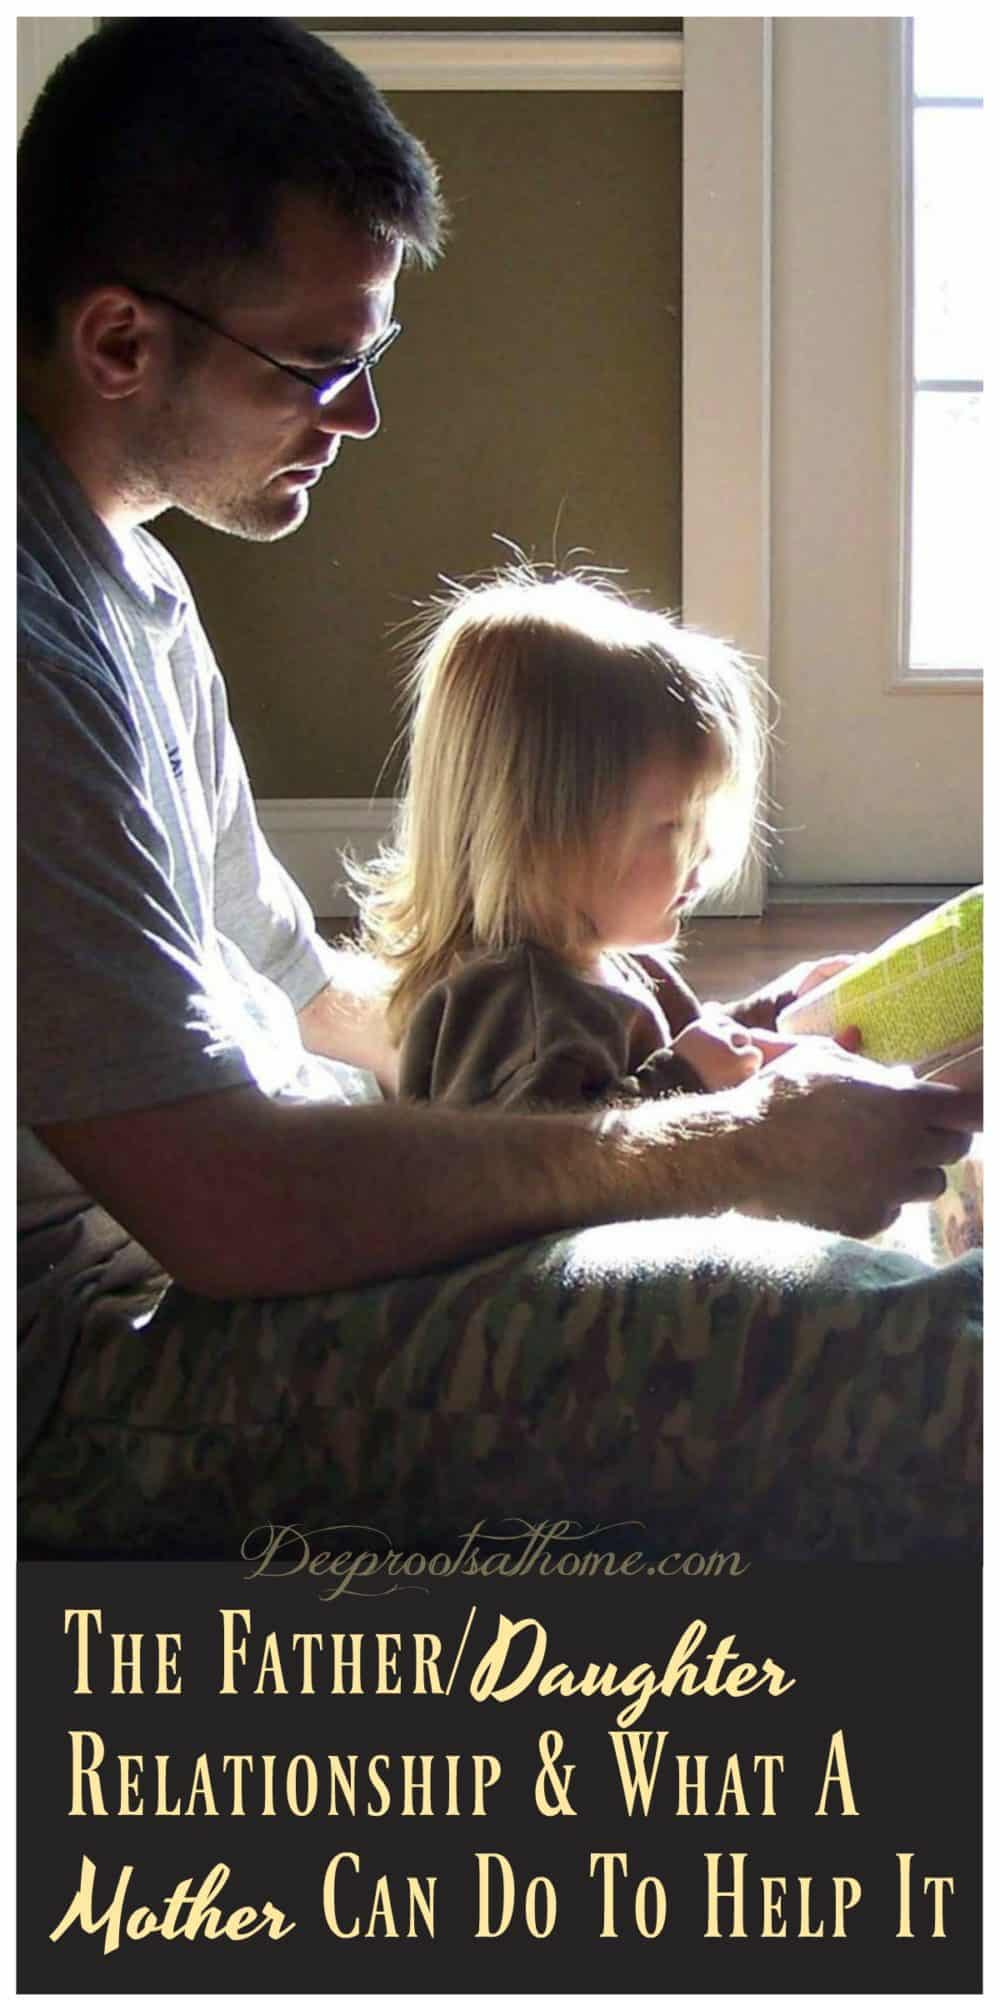 The Father/Daughter Relationship & What a Mom Can Do to Facilitate It. daddy's little girl